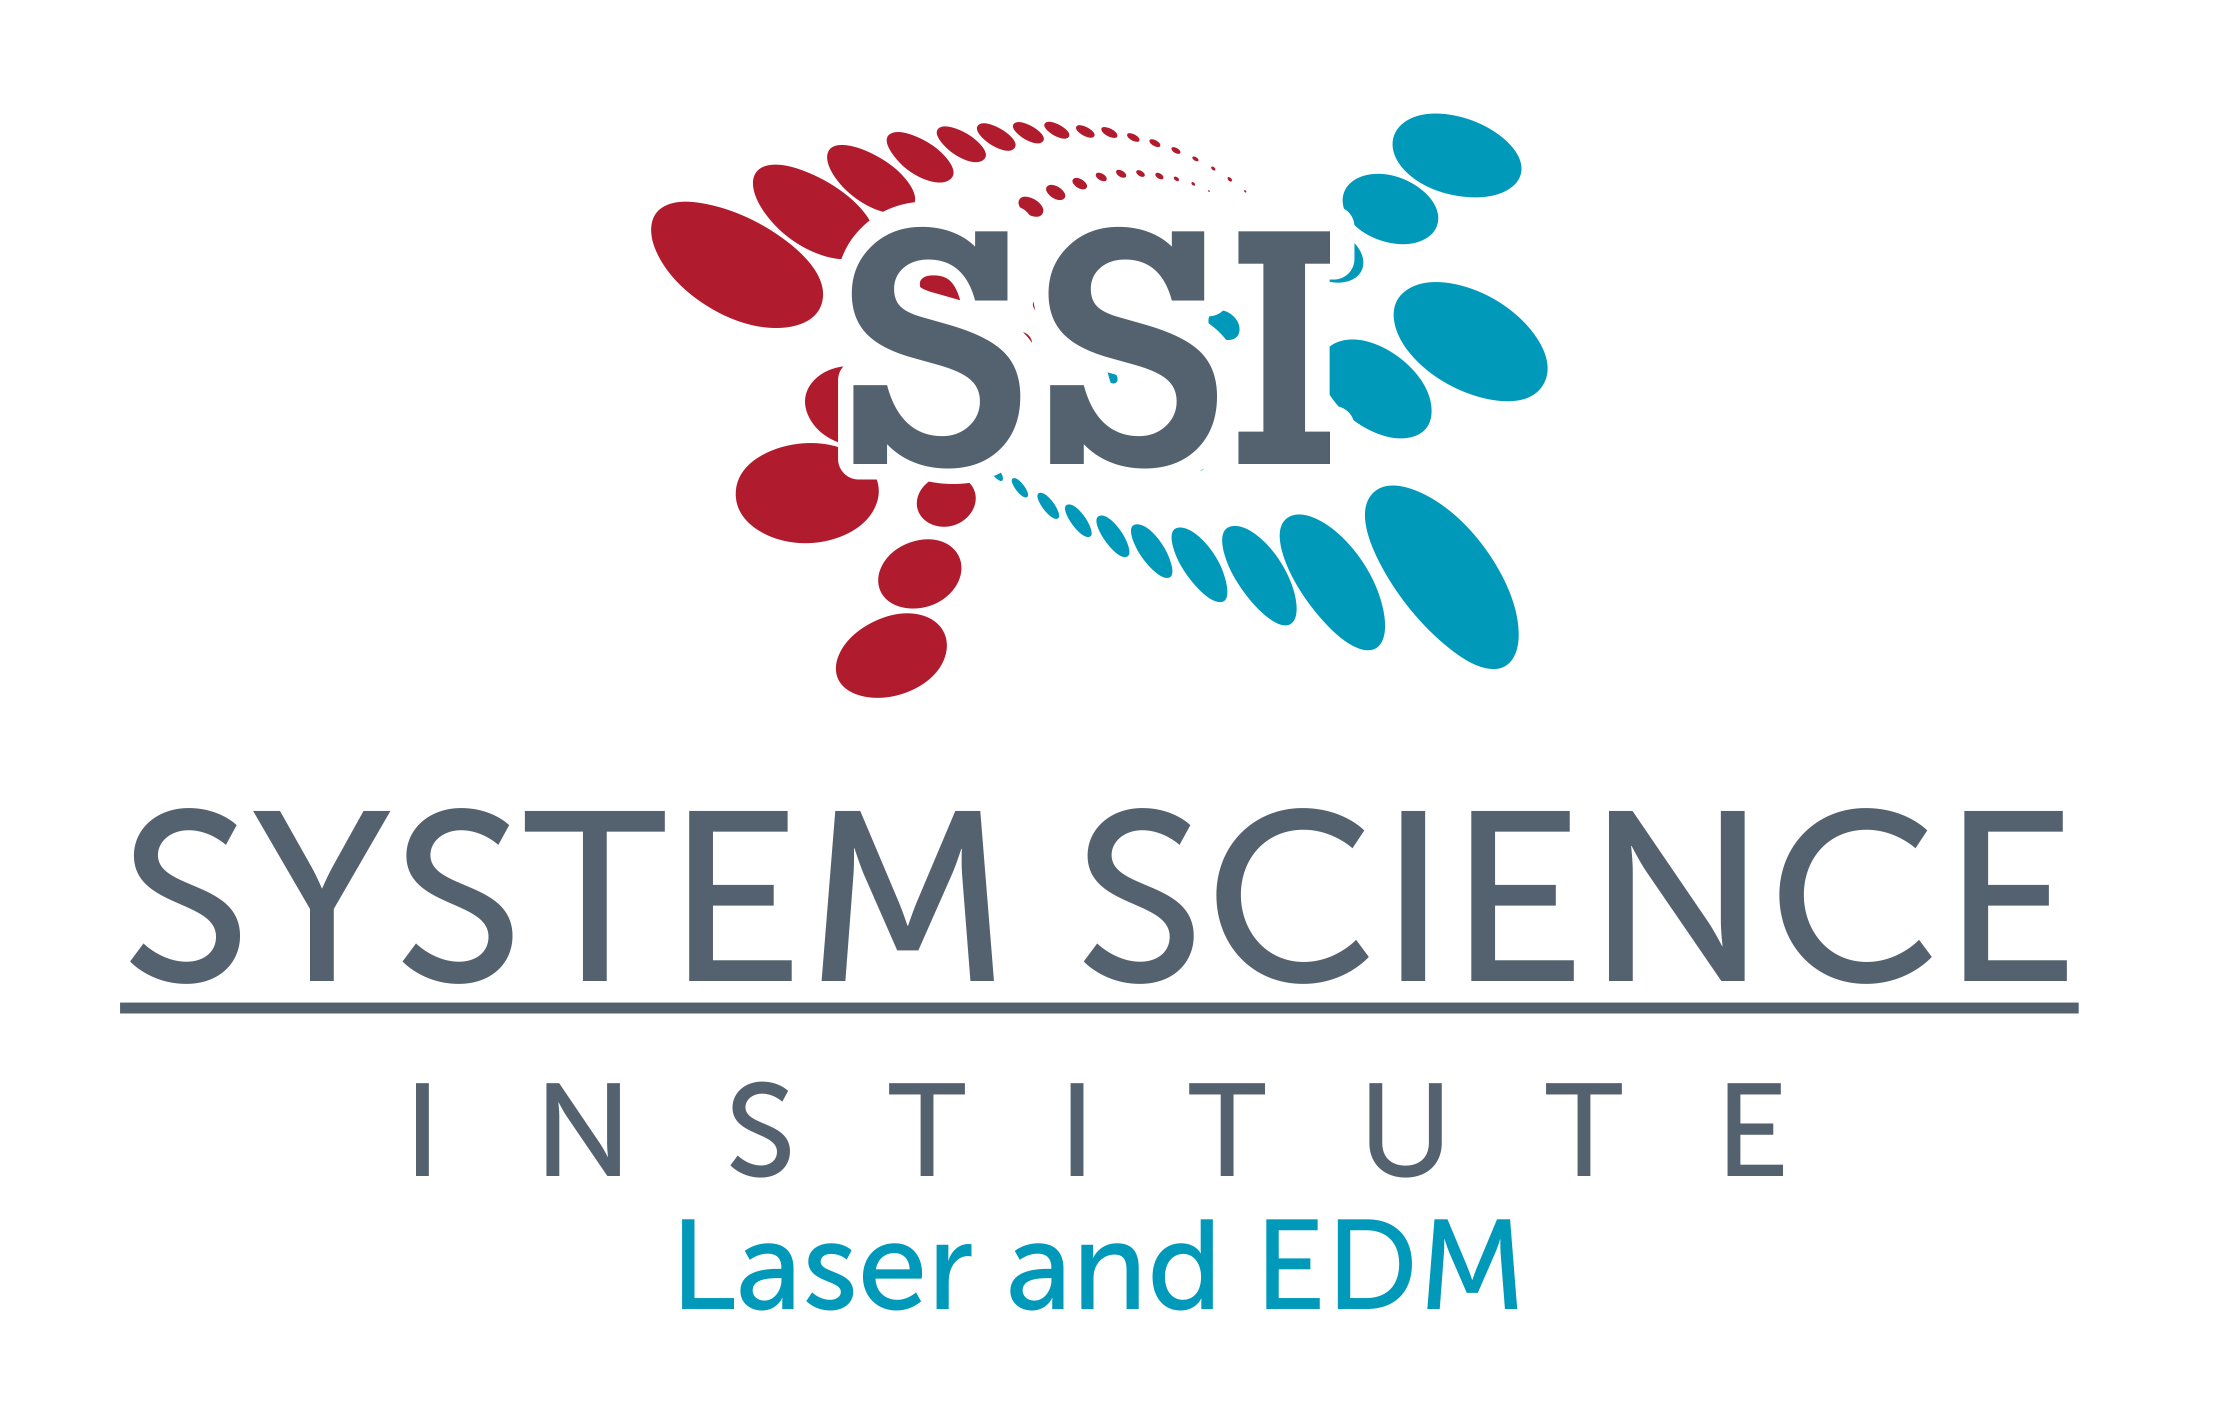 SSI-SYSTEM SCIENCE INST.